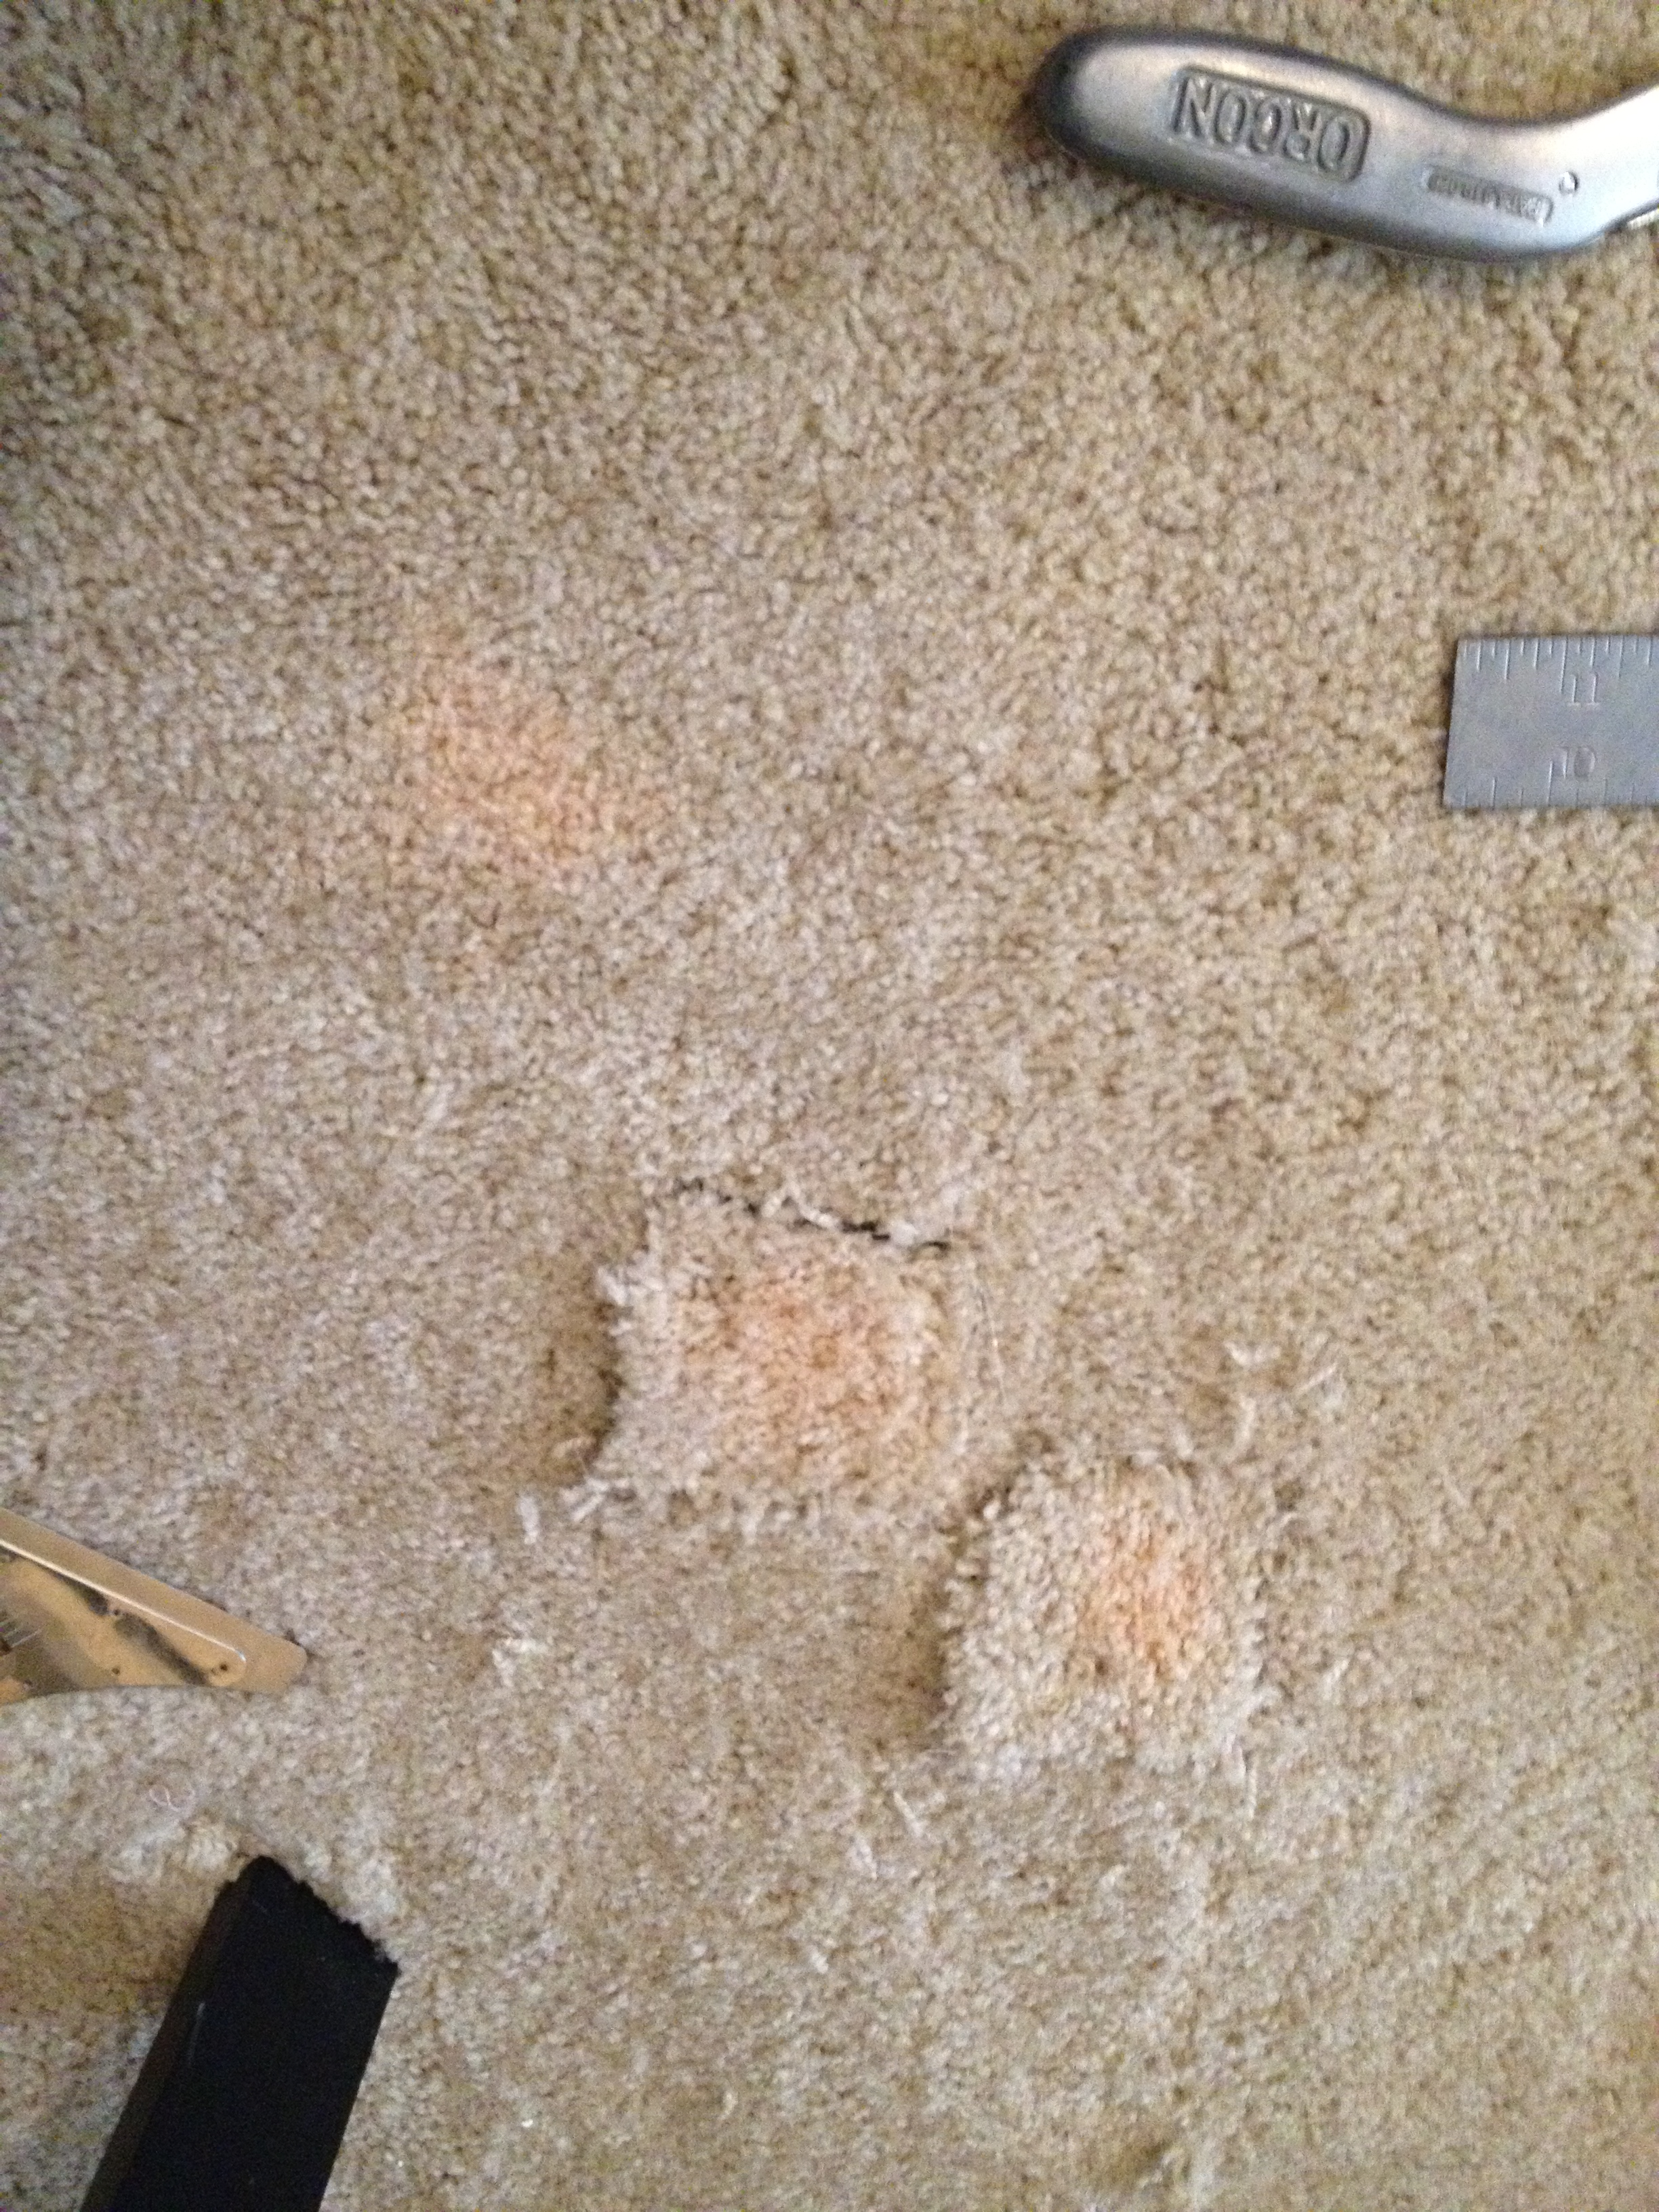 Bleach Stains Never Come Out By Cleaning Indianapolis Carpet Repair Makes It New Indianapolis Carpet Repair